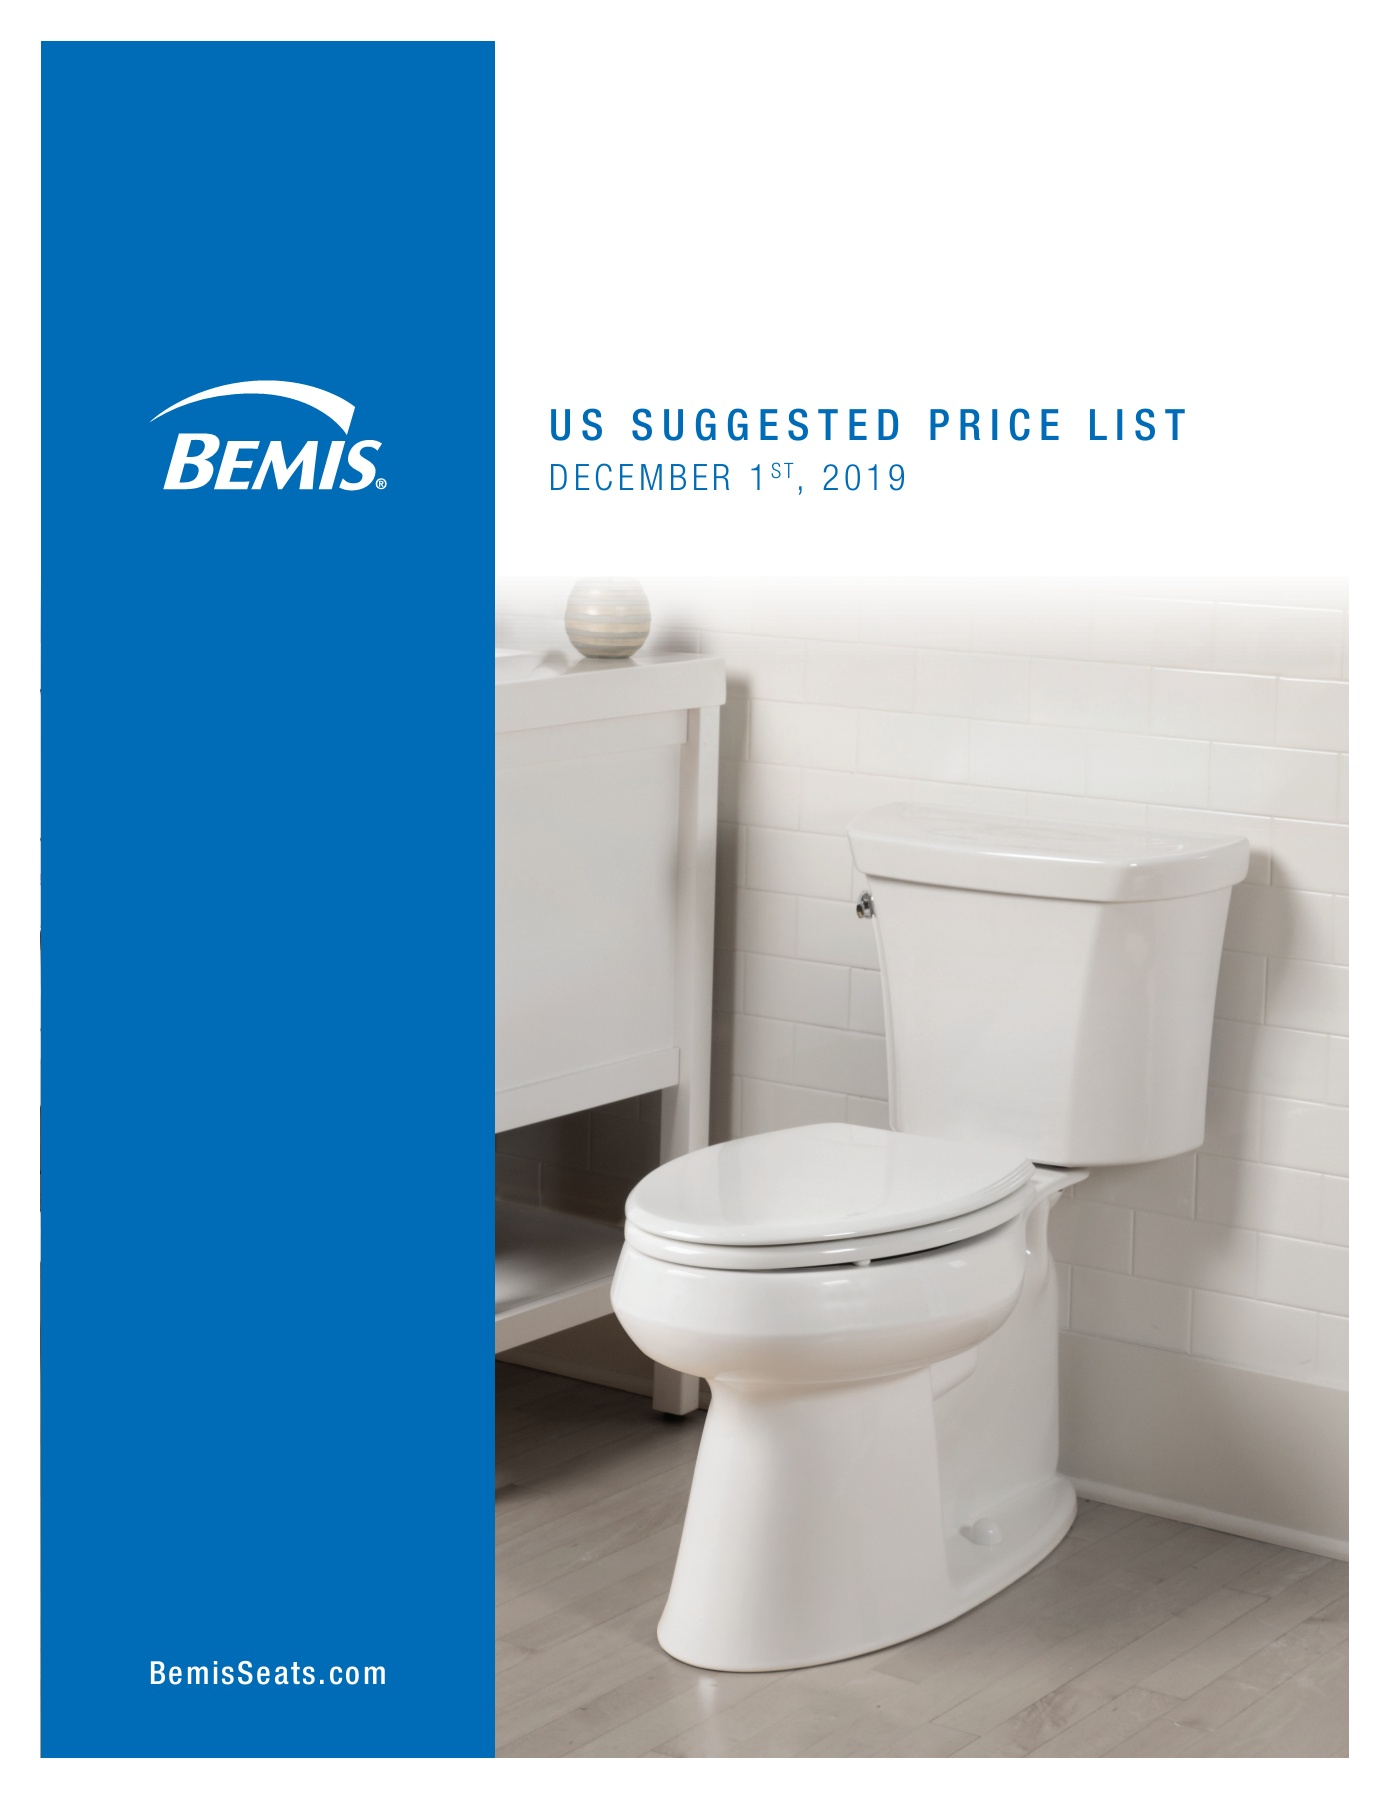 Picture of: 0b7014021a Bemis Price List Usa 2020 Pages 1 16 Text Version Anyflip